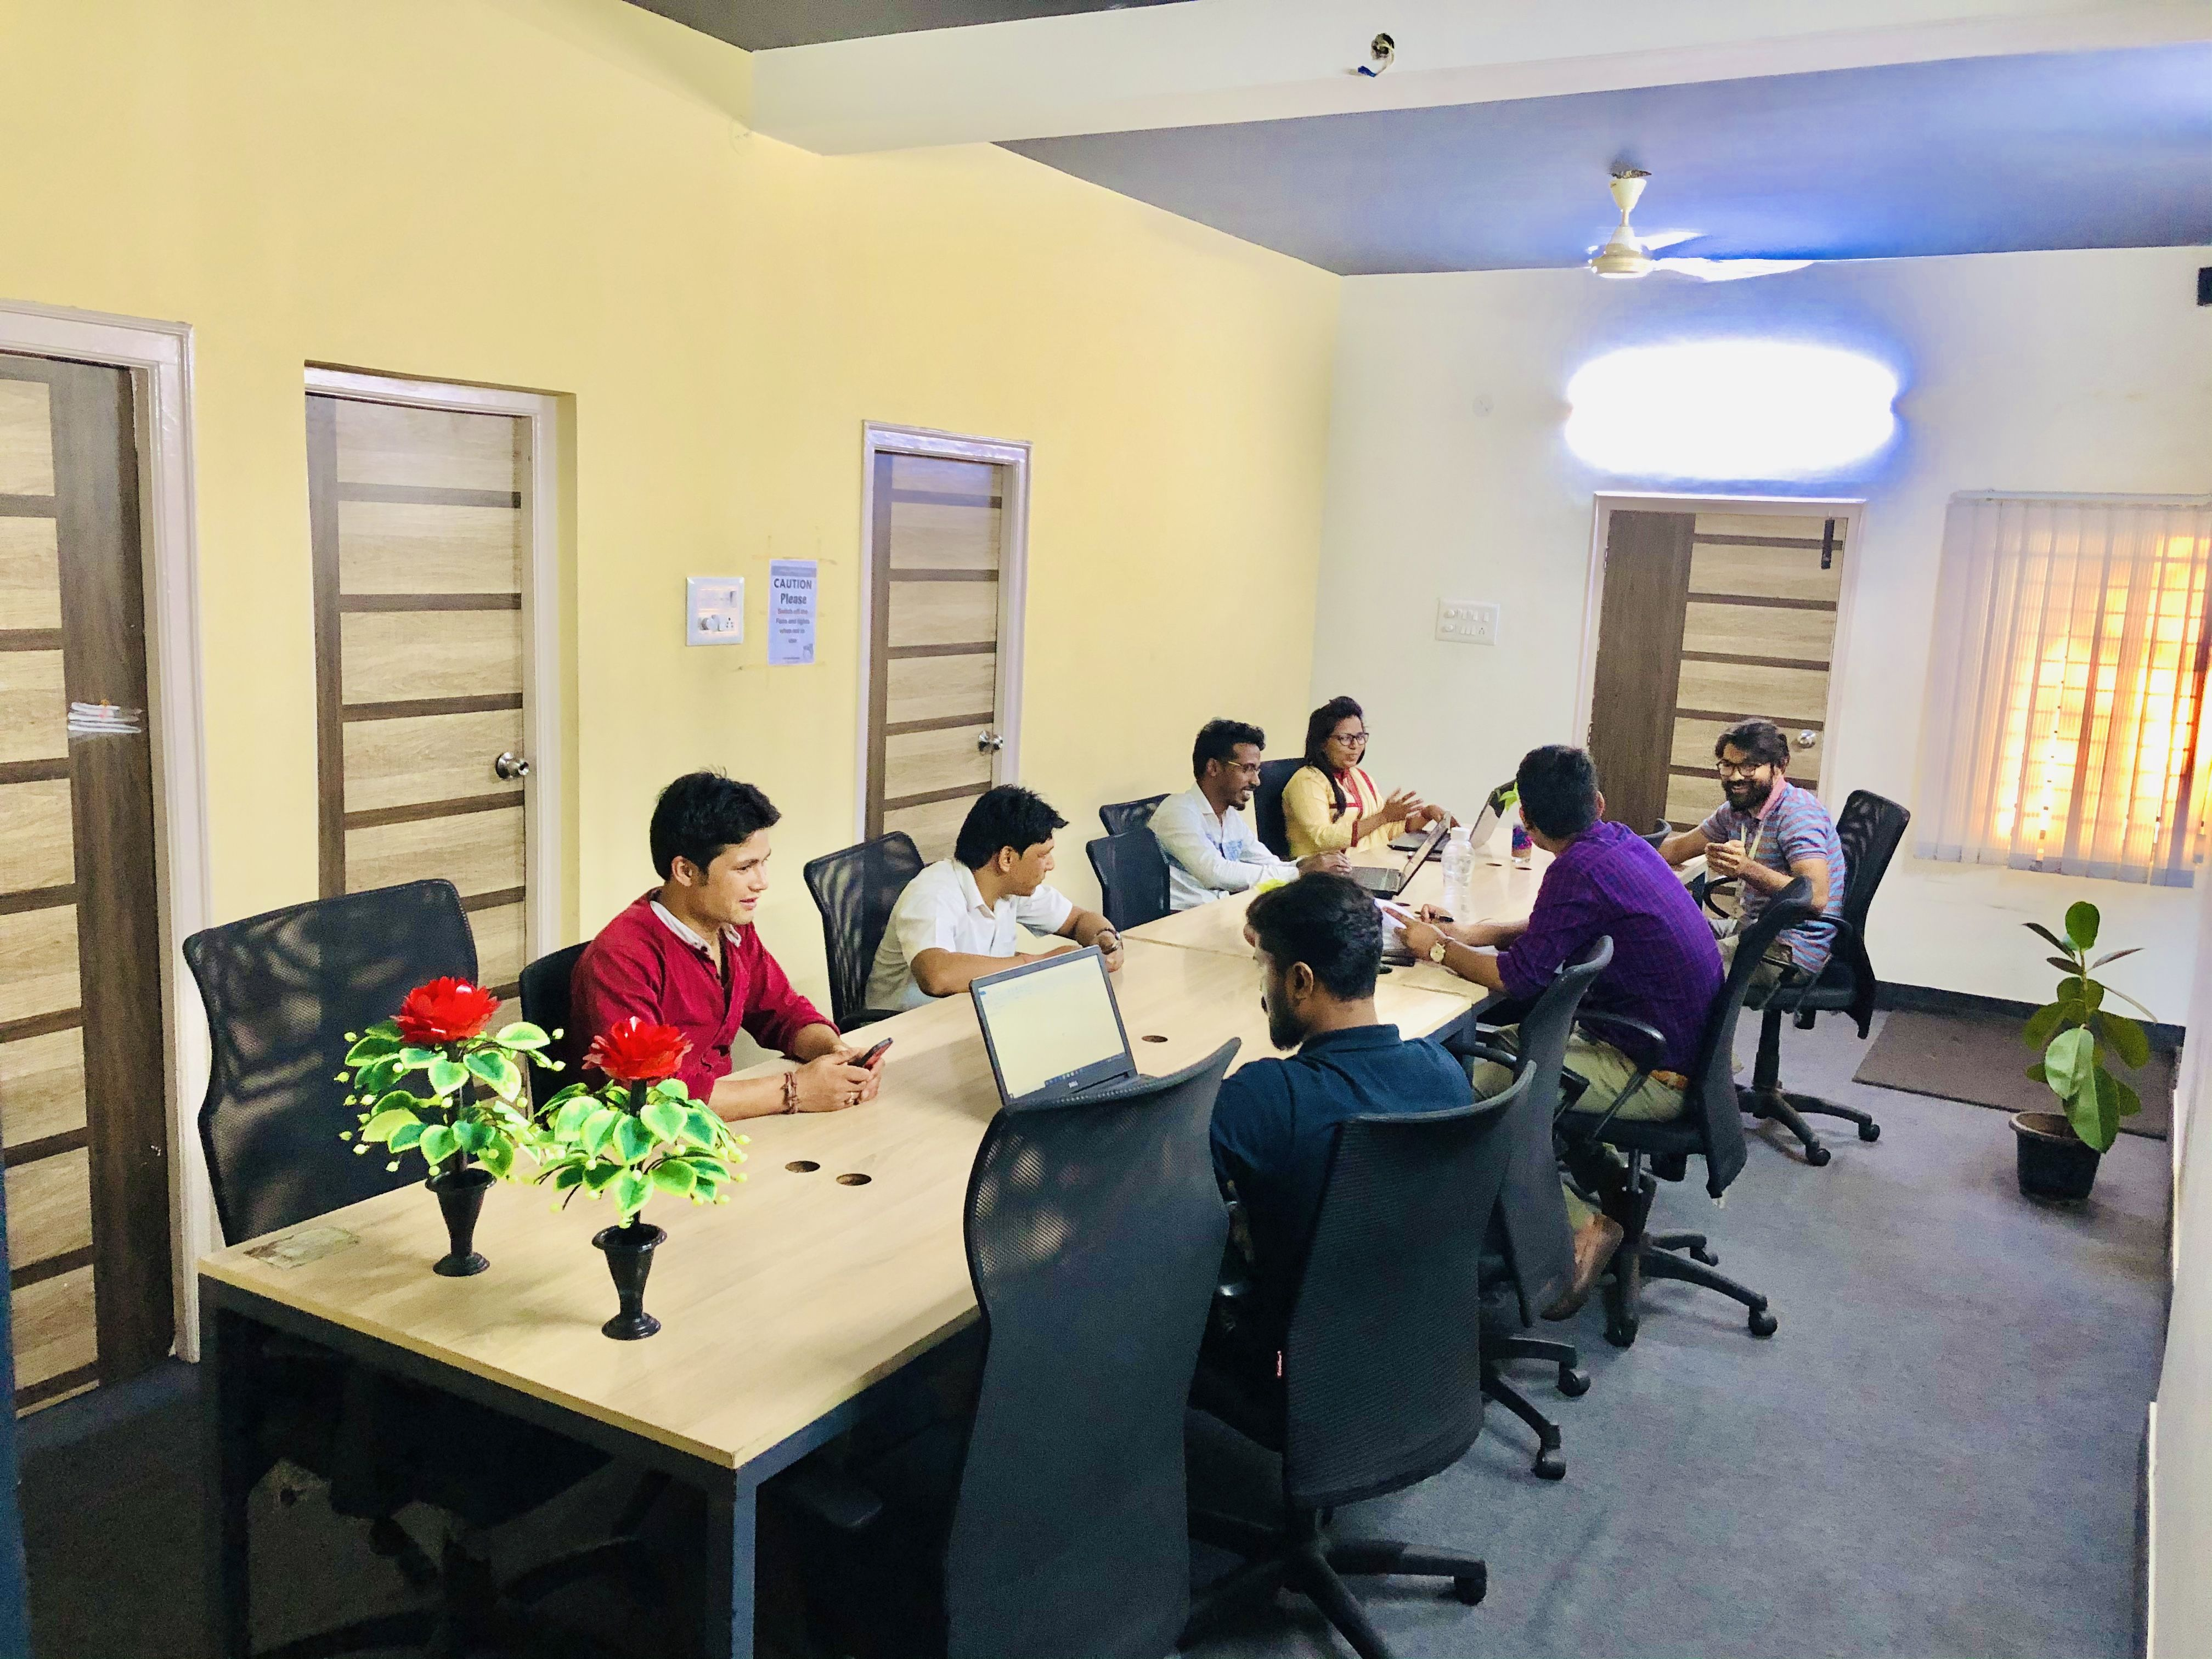 Low Budget Office Available For Rent In Indiranagar 9739966778 Coworking Space Shared Office Space Shared Office